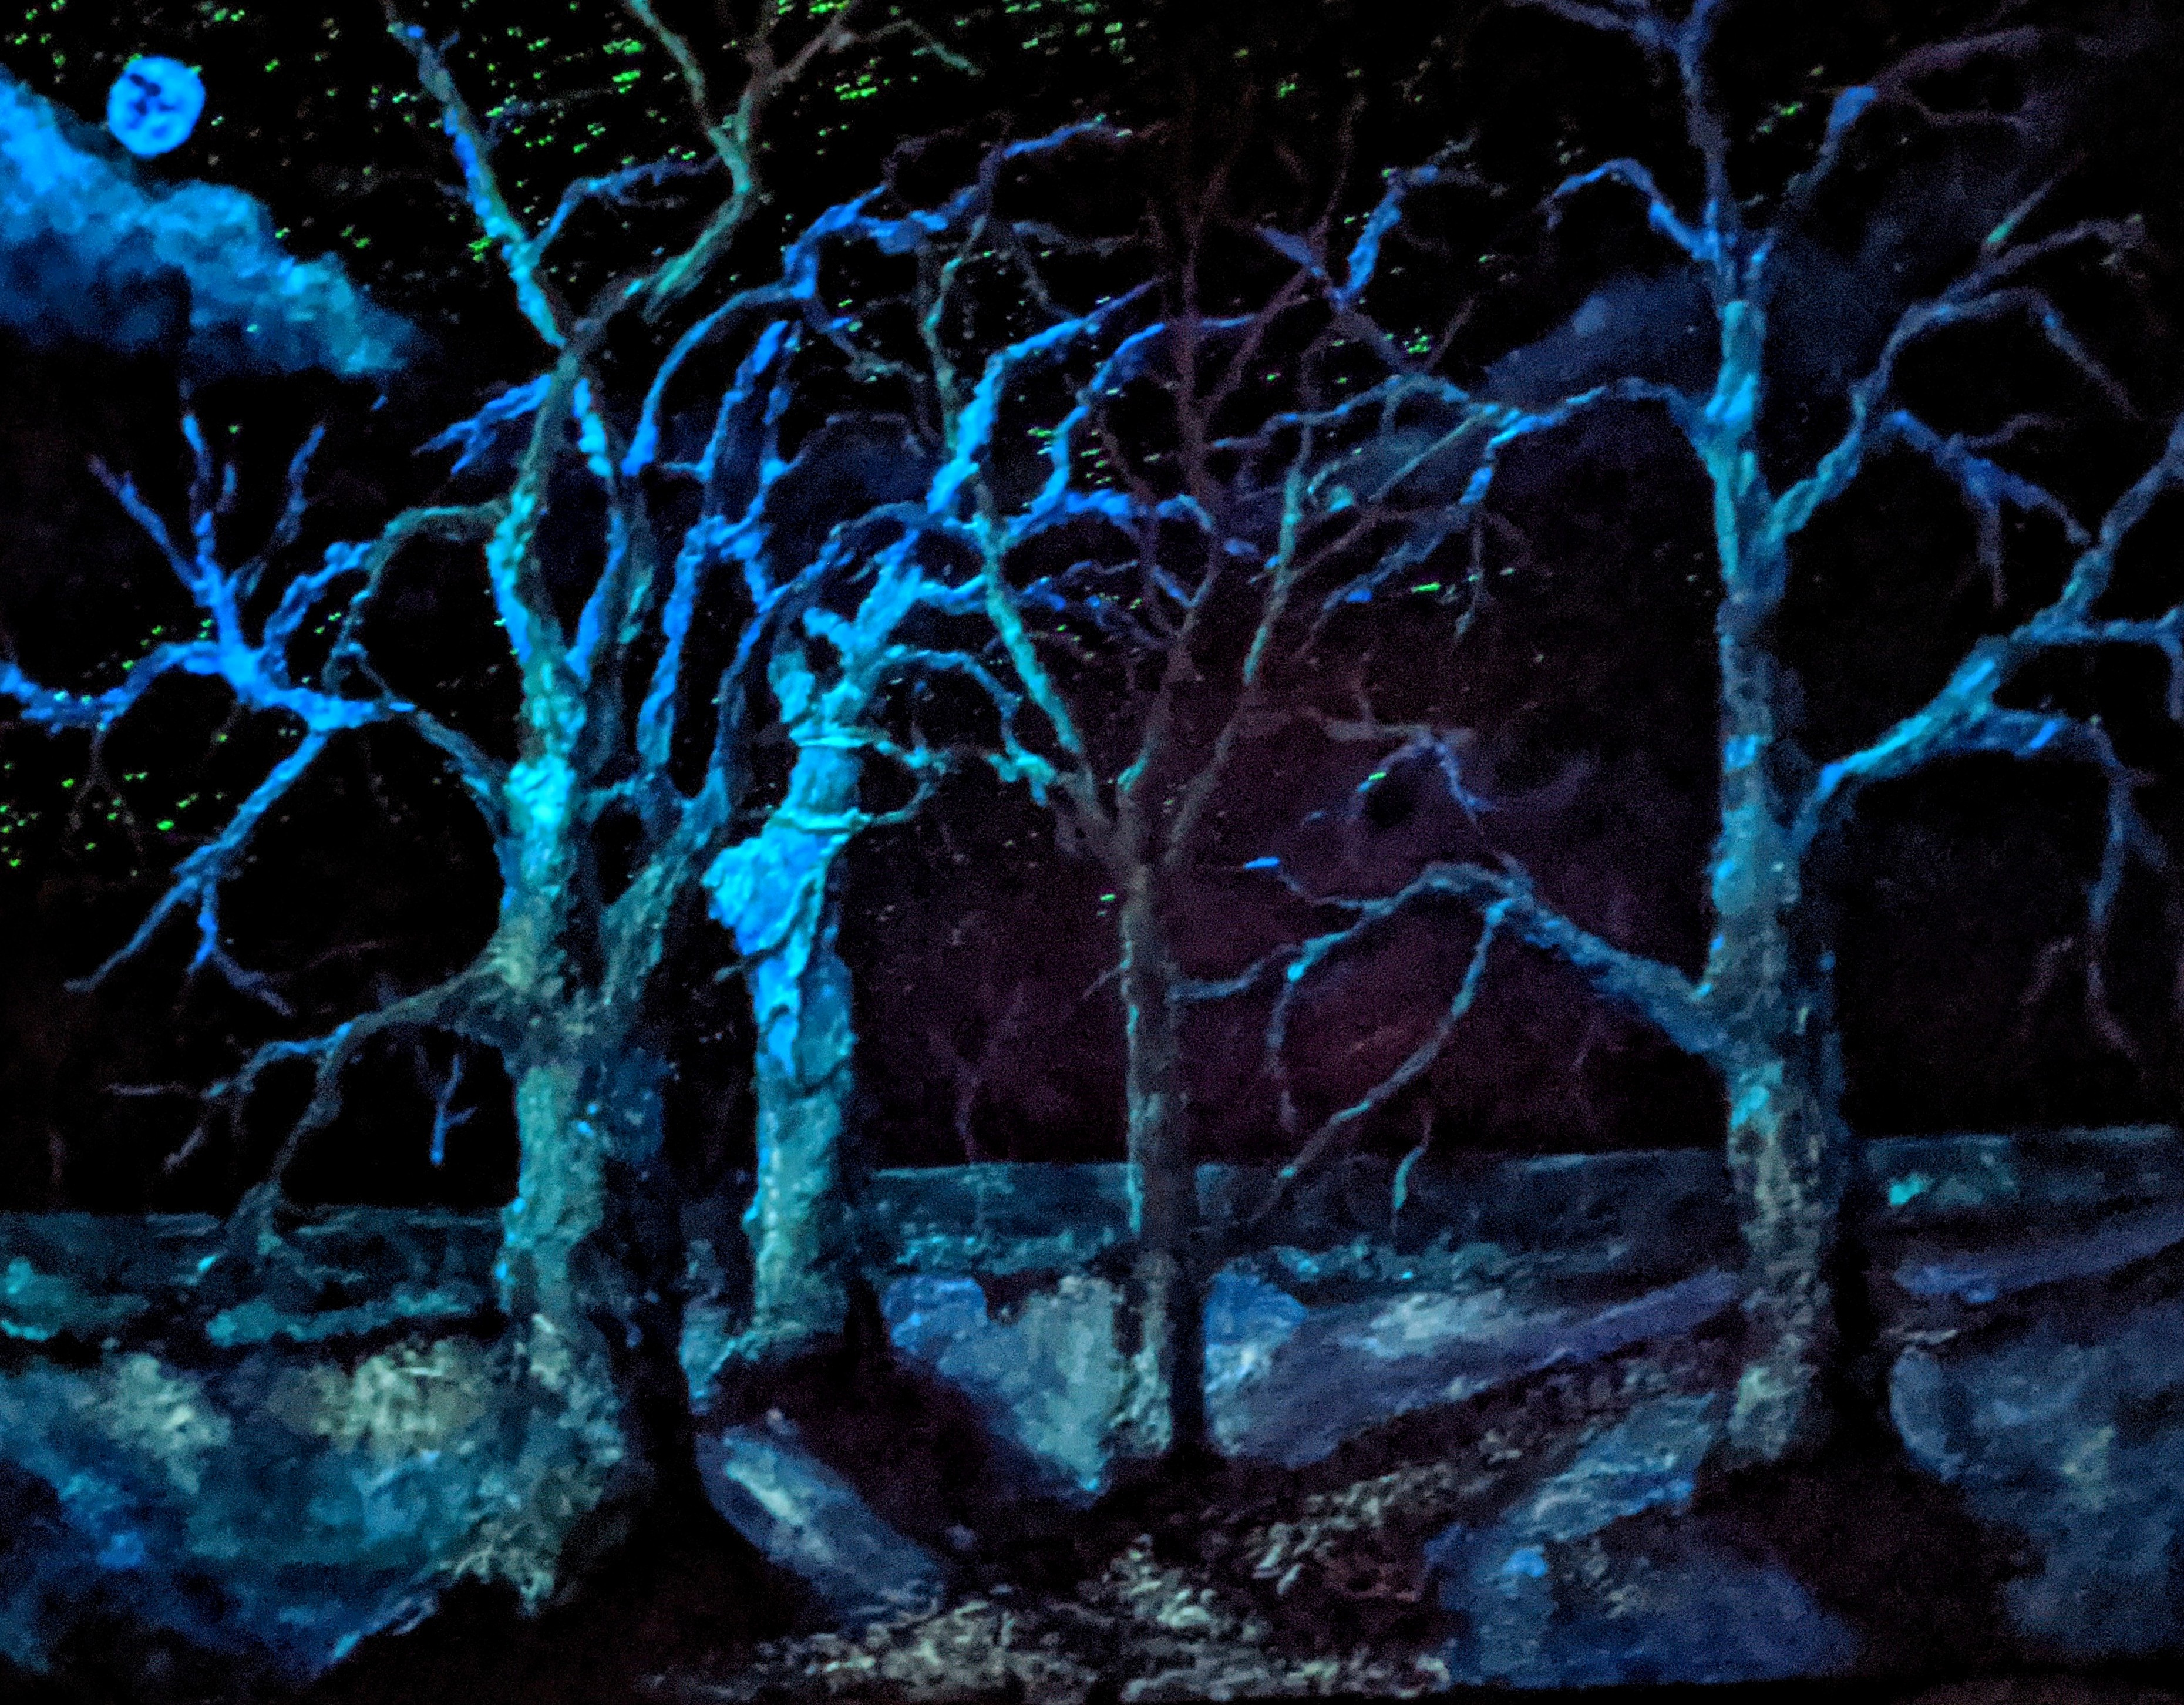 https://0201.nccdn.net/1_2/000/000/0cd/6e8/AMERICAN-WHITE-SYCAMORES----HIGHLIGHTED-WITH-GLOW-IN-DARK-LUMINESCENT-PAINT-3719x2903.jpg